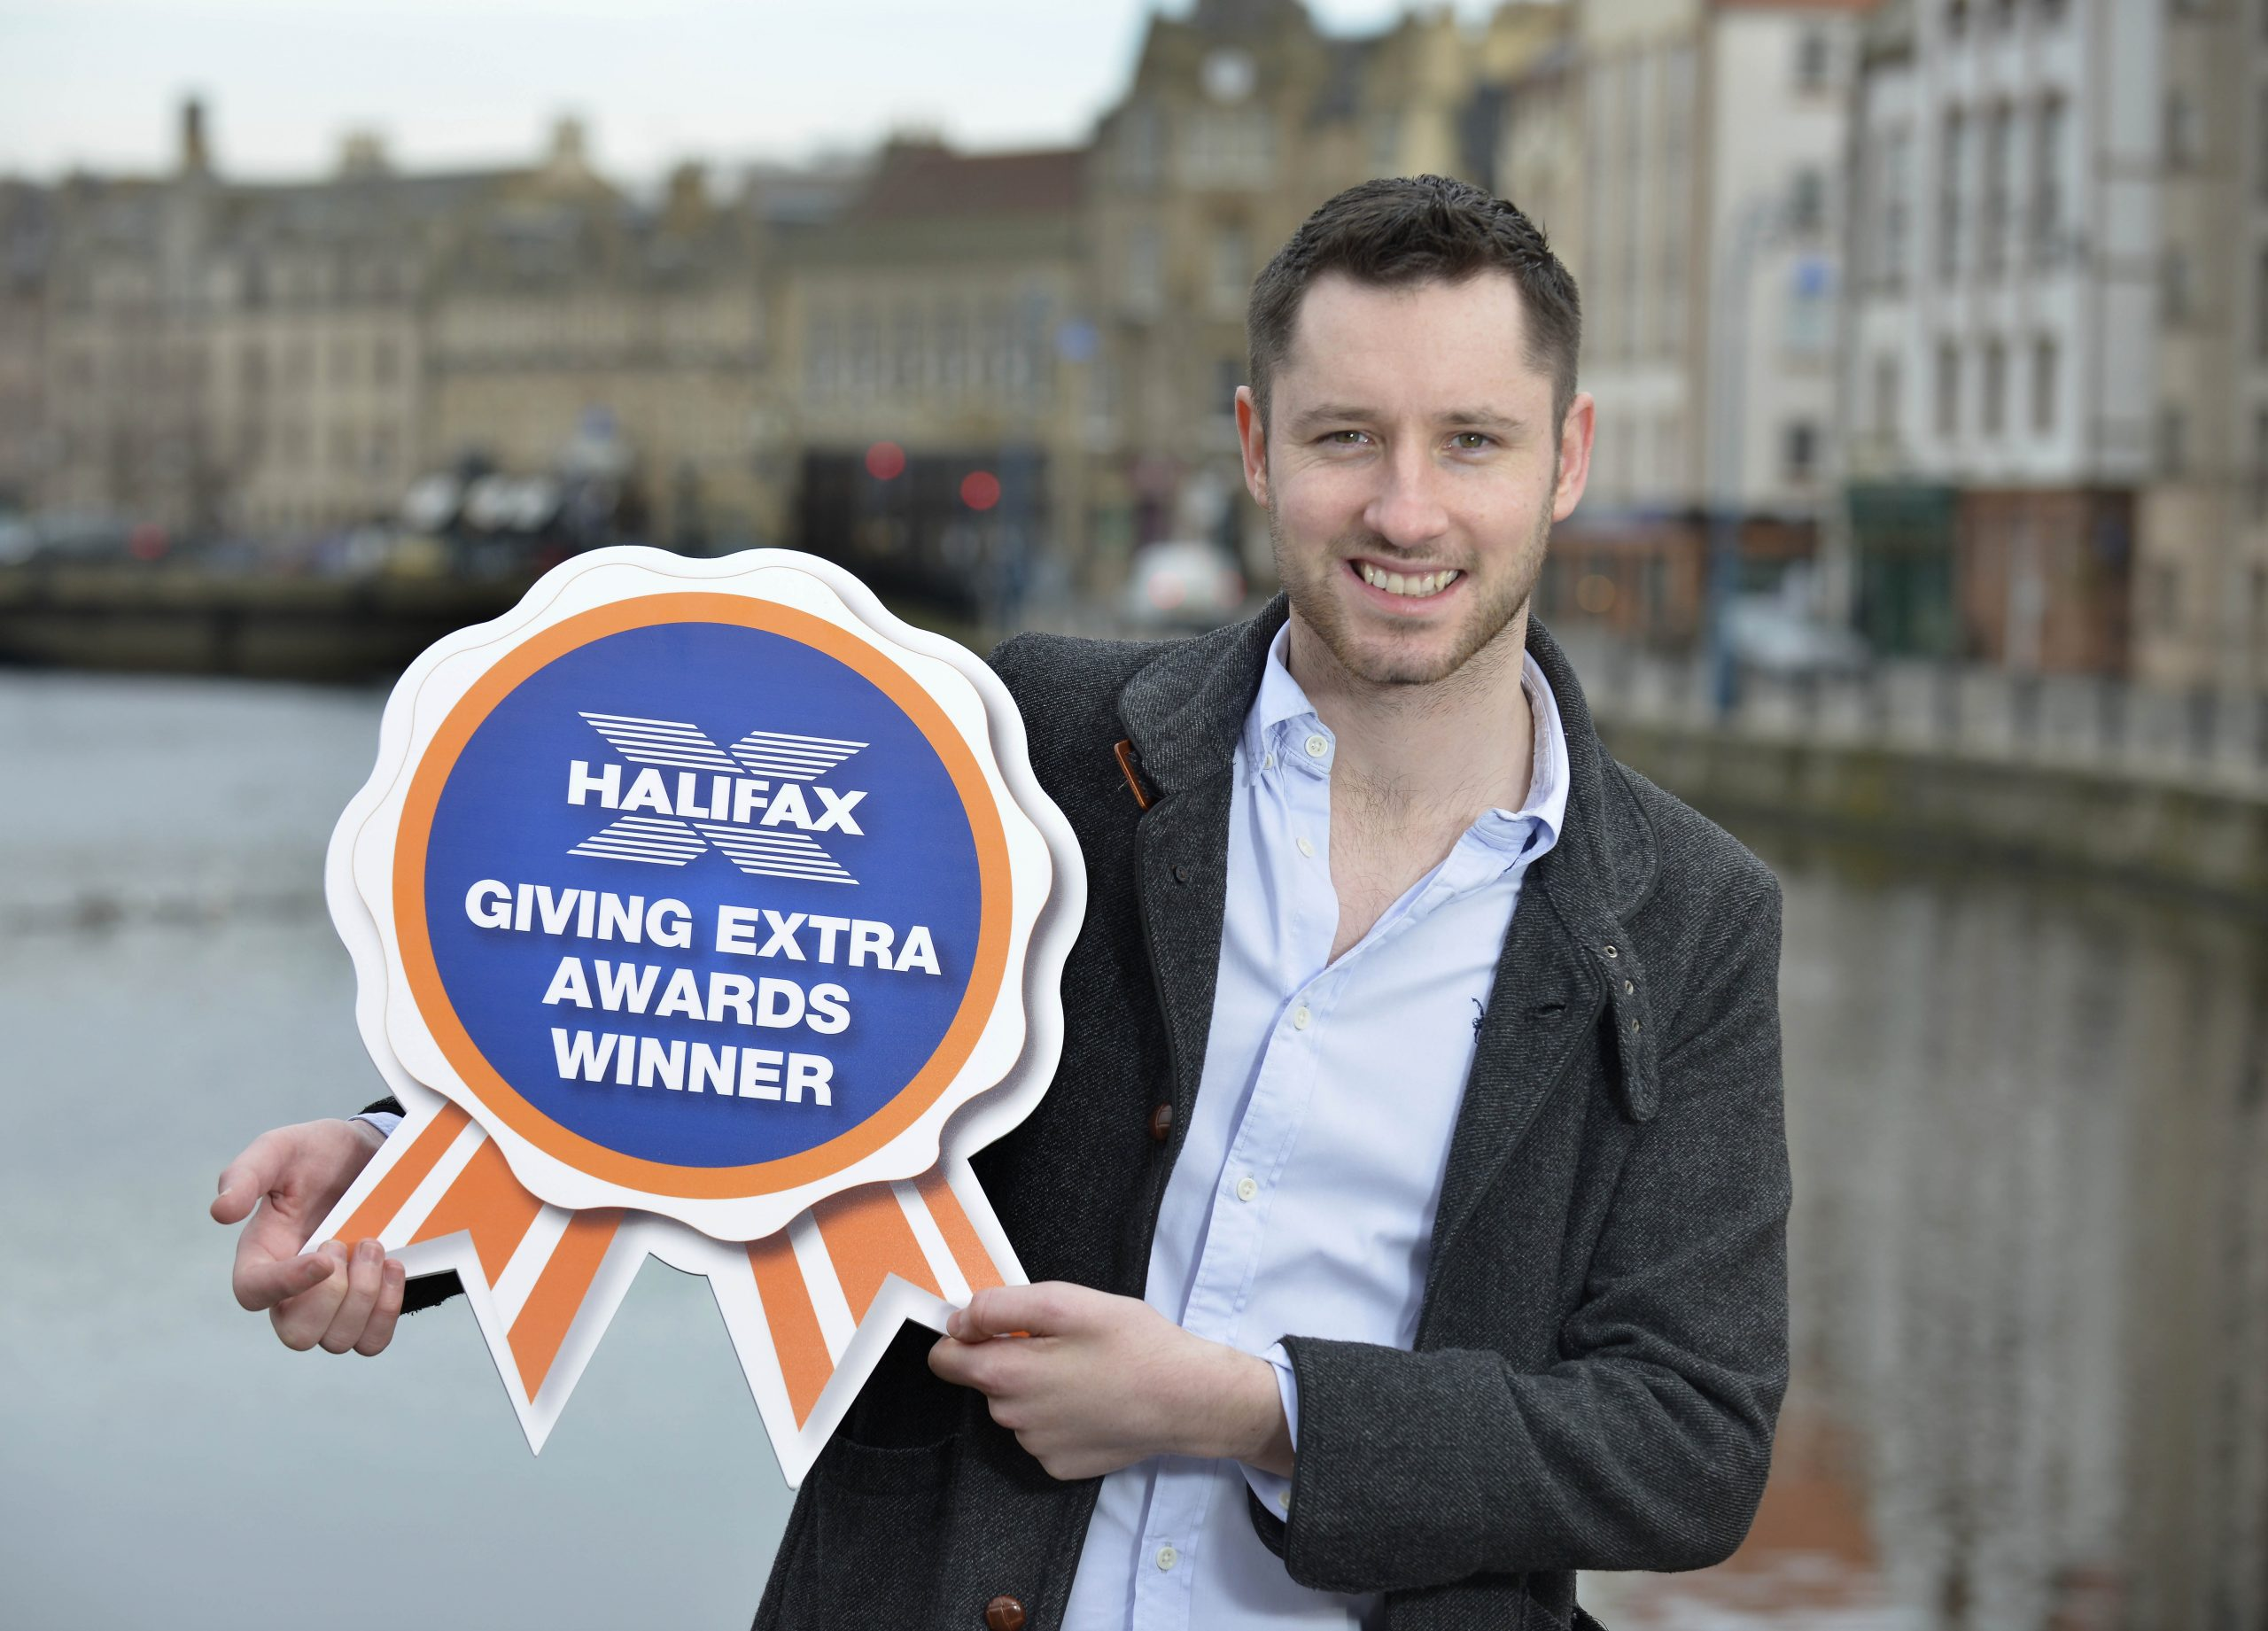 Supporters of disability projects across the UK win Halifax Giving Extra Awards